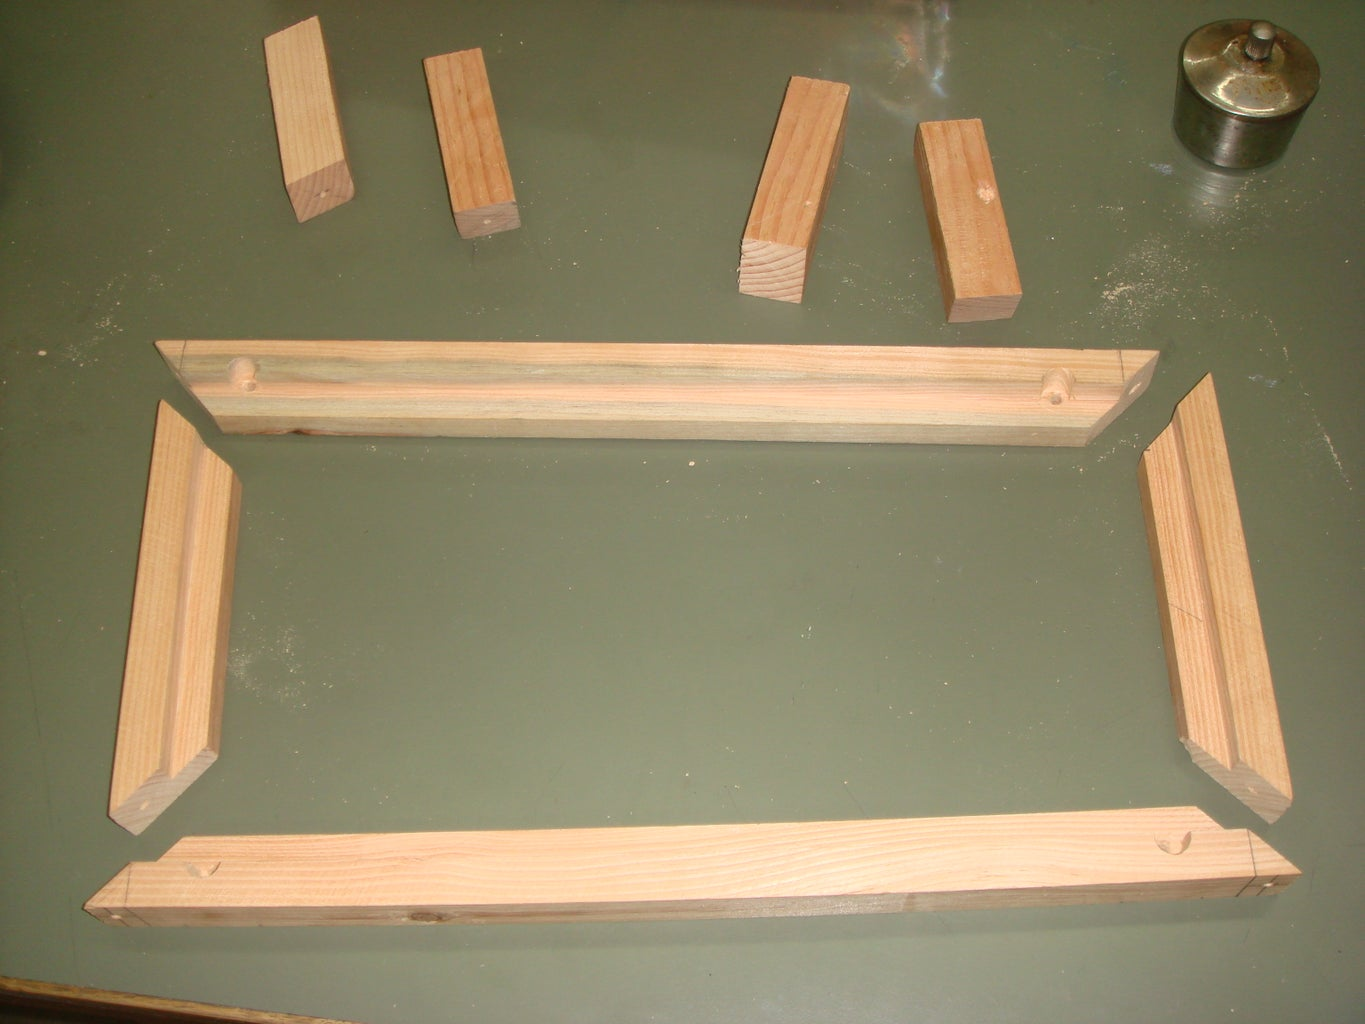 Building the Wooden Frame for the Reservoir